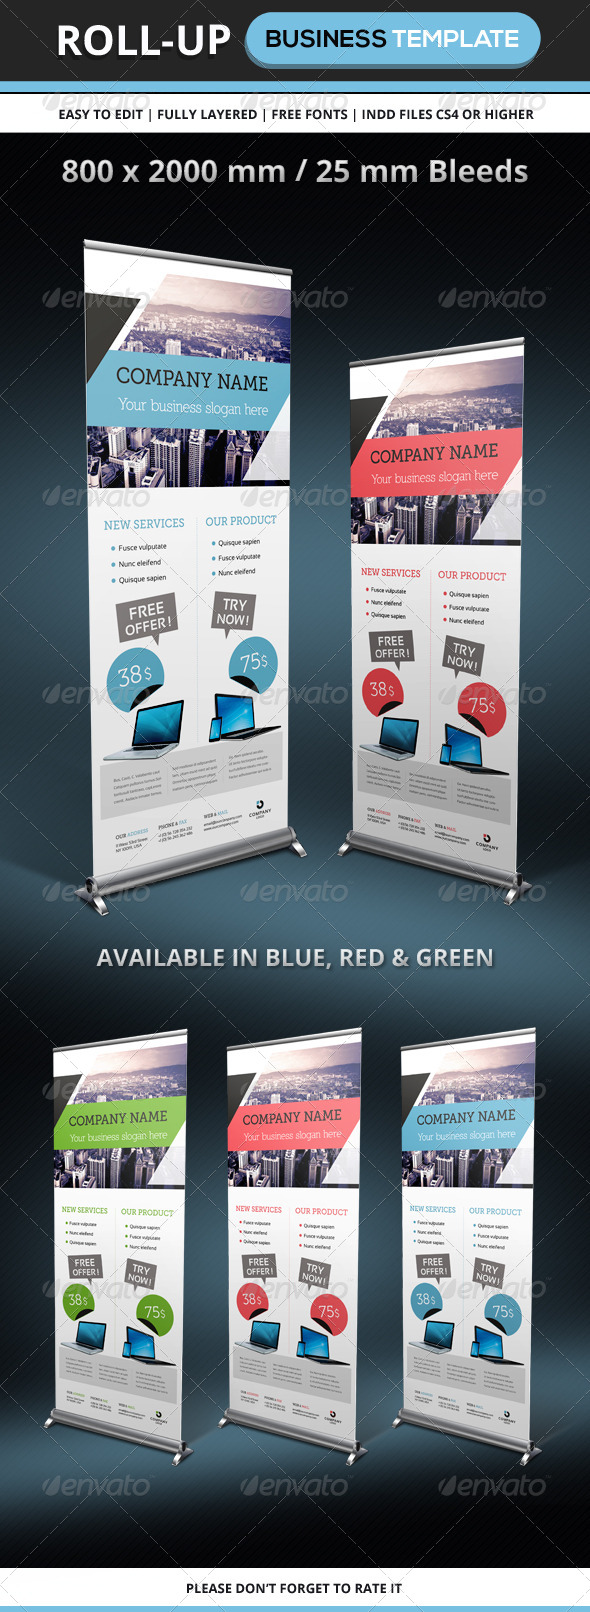 Corporate & Business Rollup template